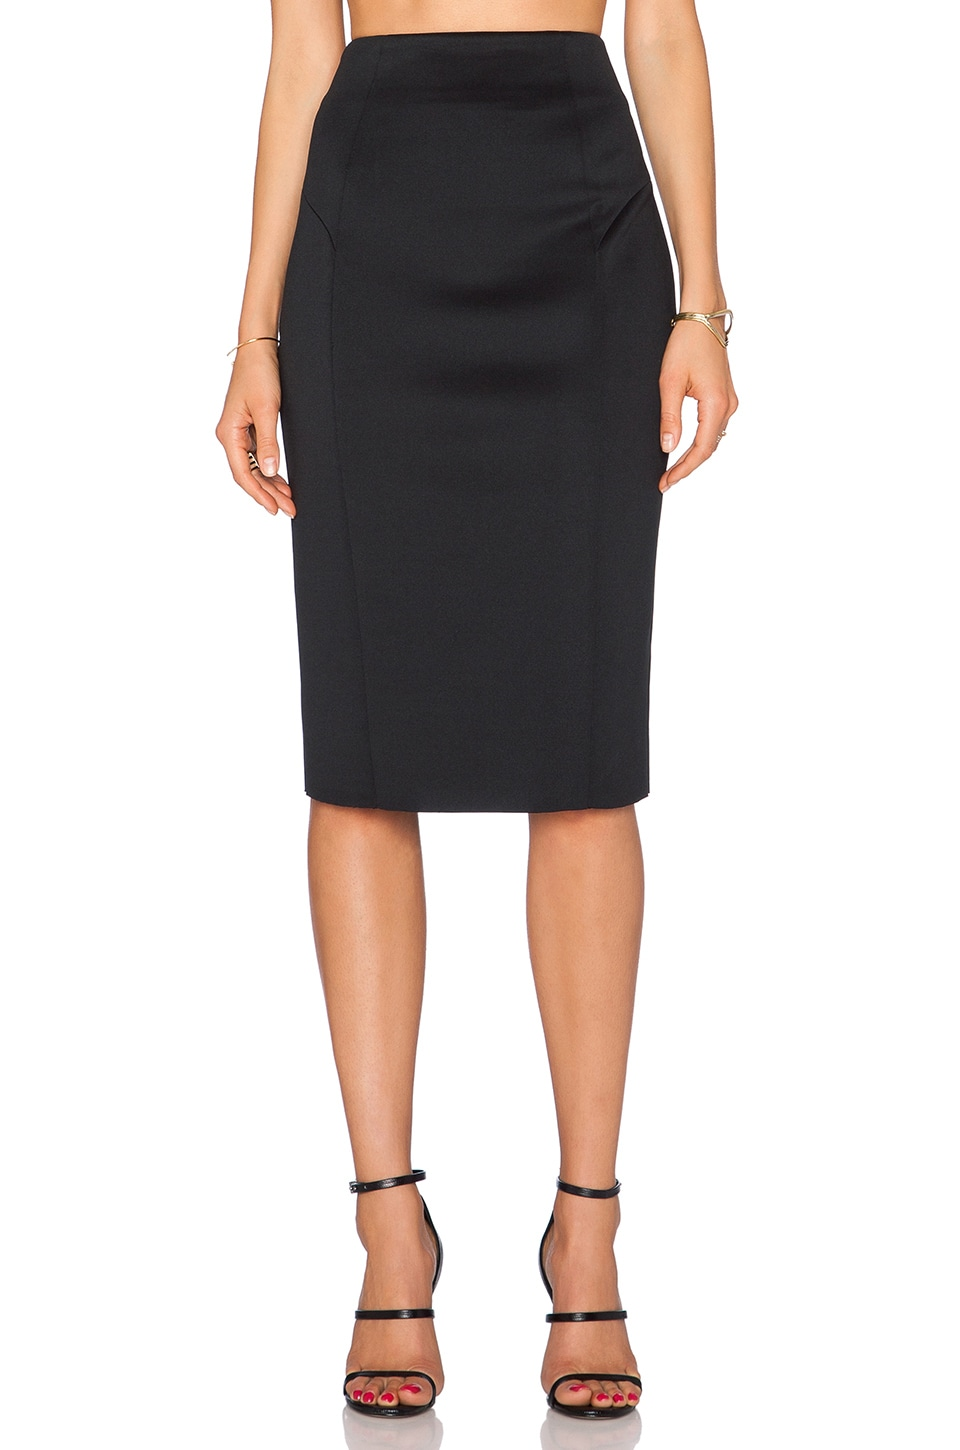 MILLY Tech High Waisted Pencil Skirt in Black